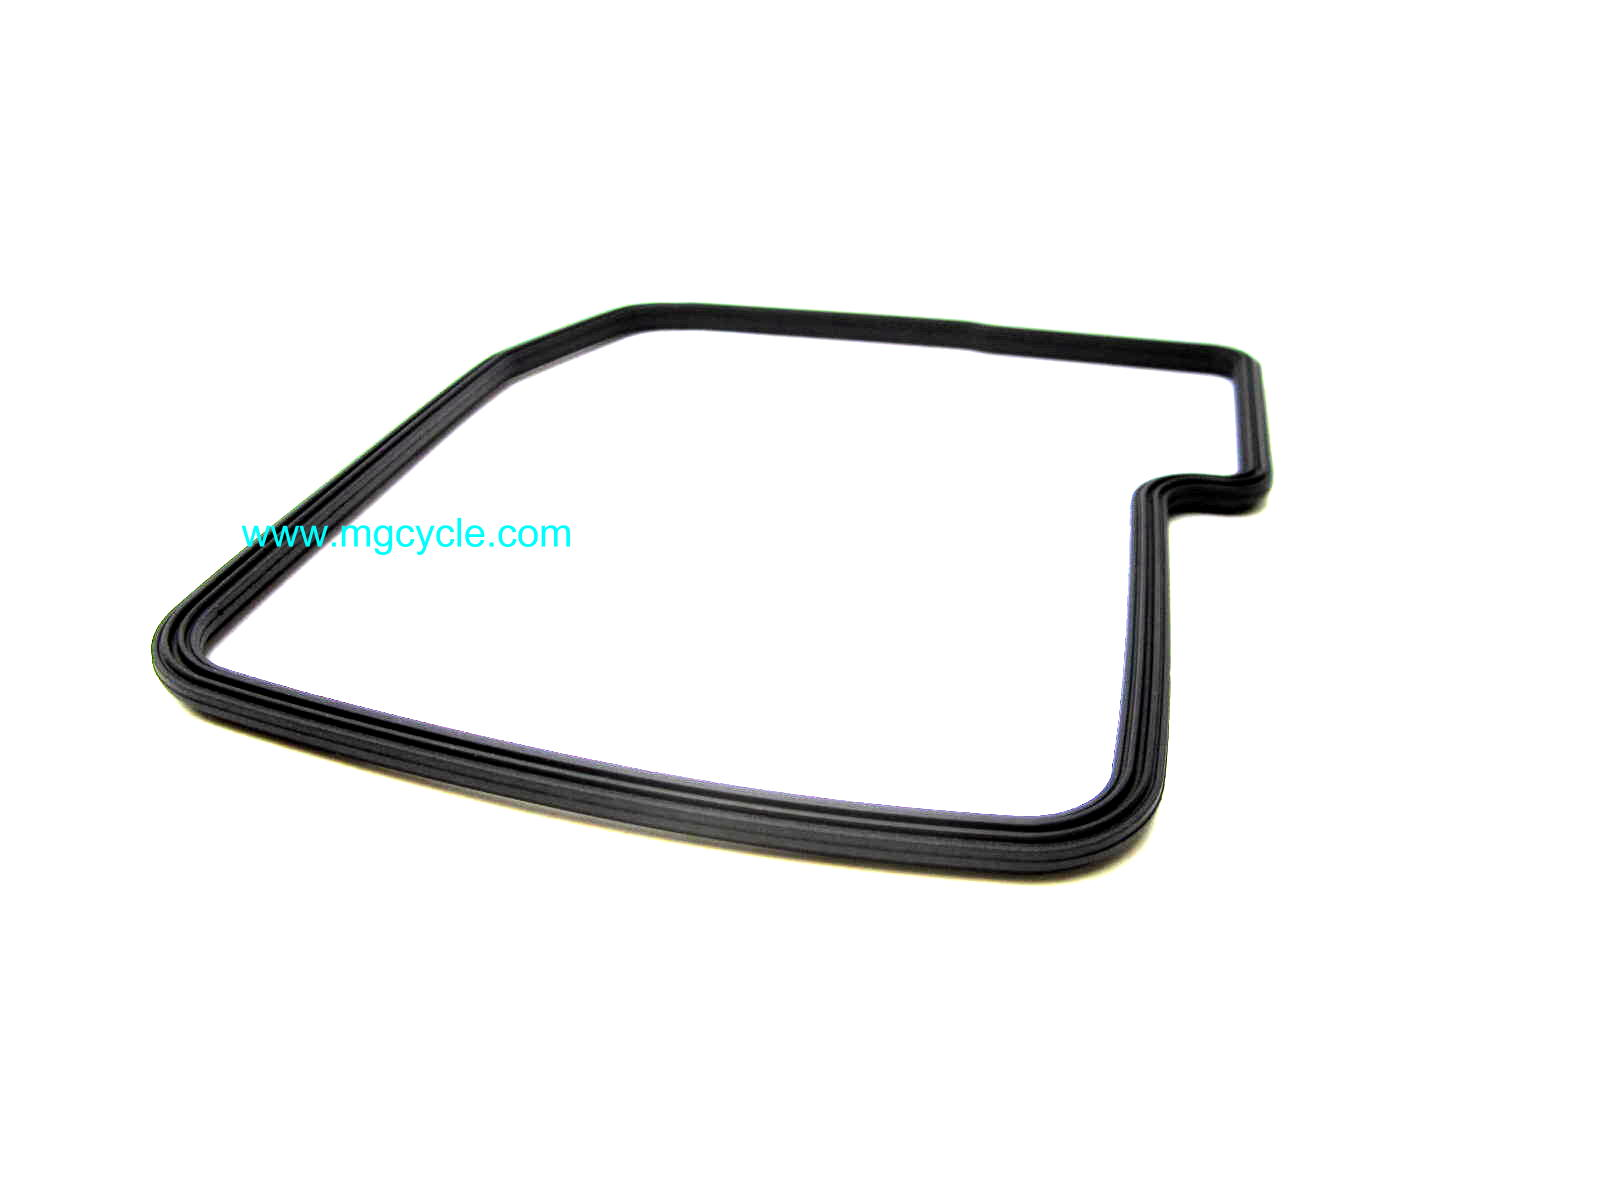 Right side valve cover gasket, 1200cc 8 valve, 1400s